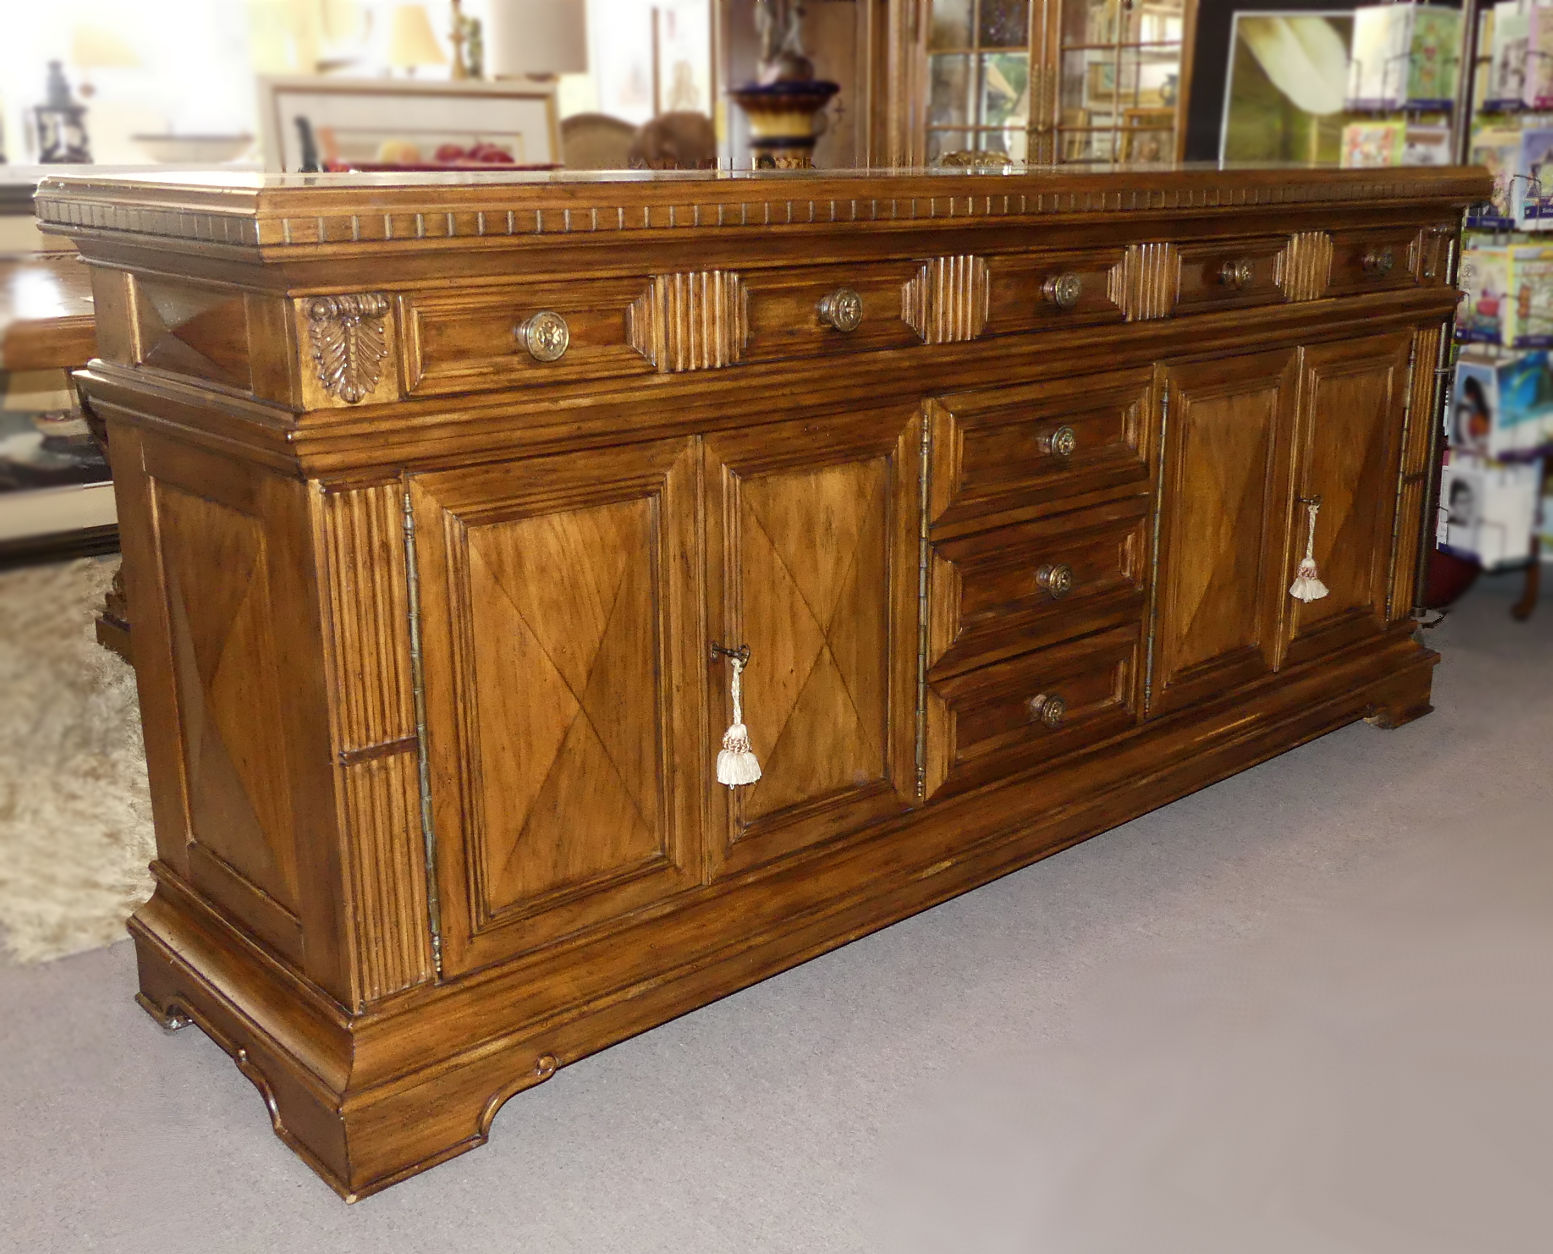 SOLD Ferguson Copeland Highlands Buffet or Credenza